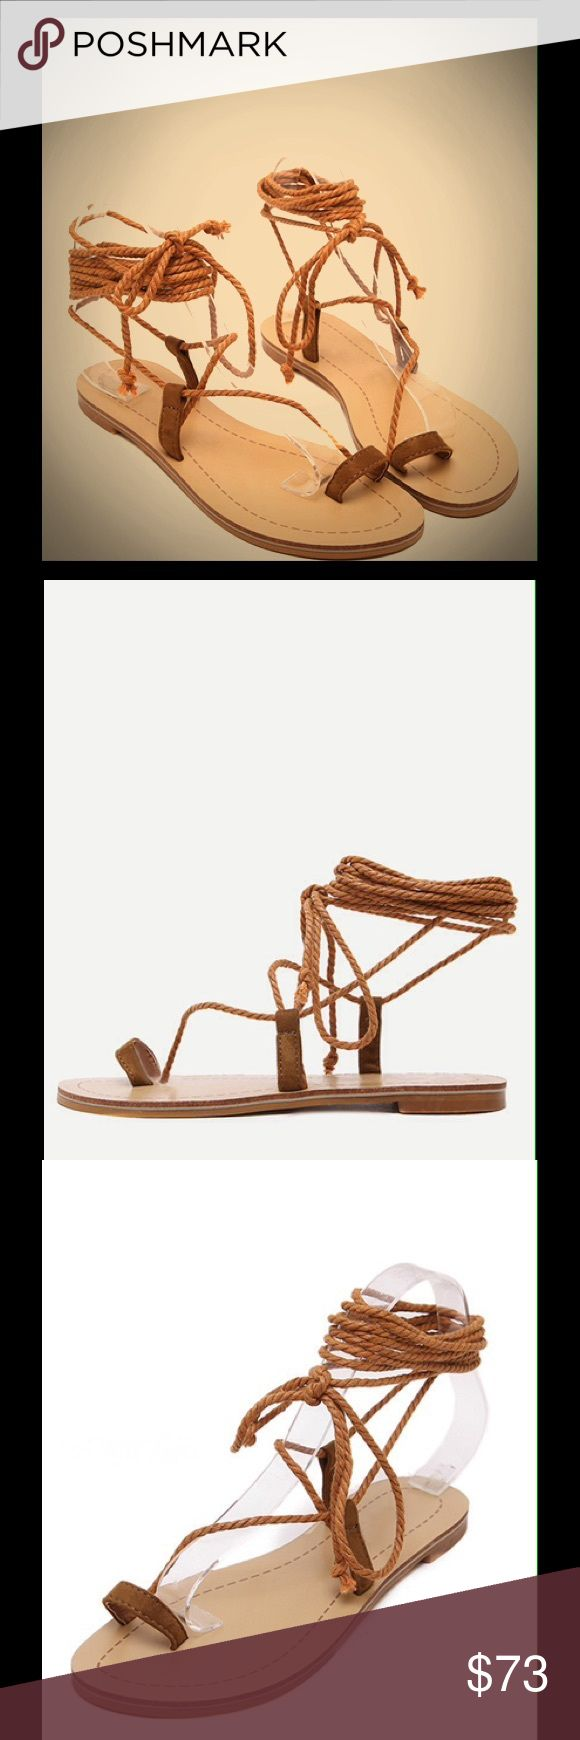 Boho Lace Up Sandal Adorable nautical sandals with toe ring design! Not fp Free People Shoes Sandals